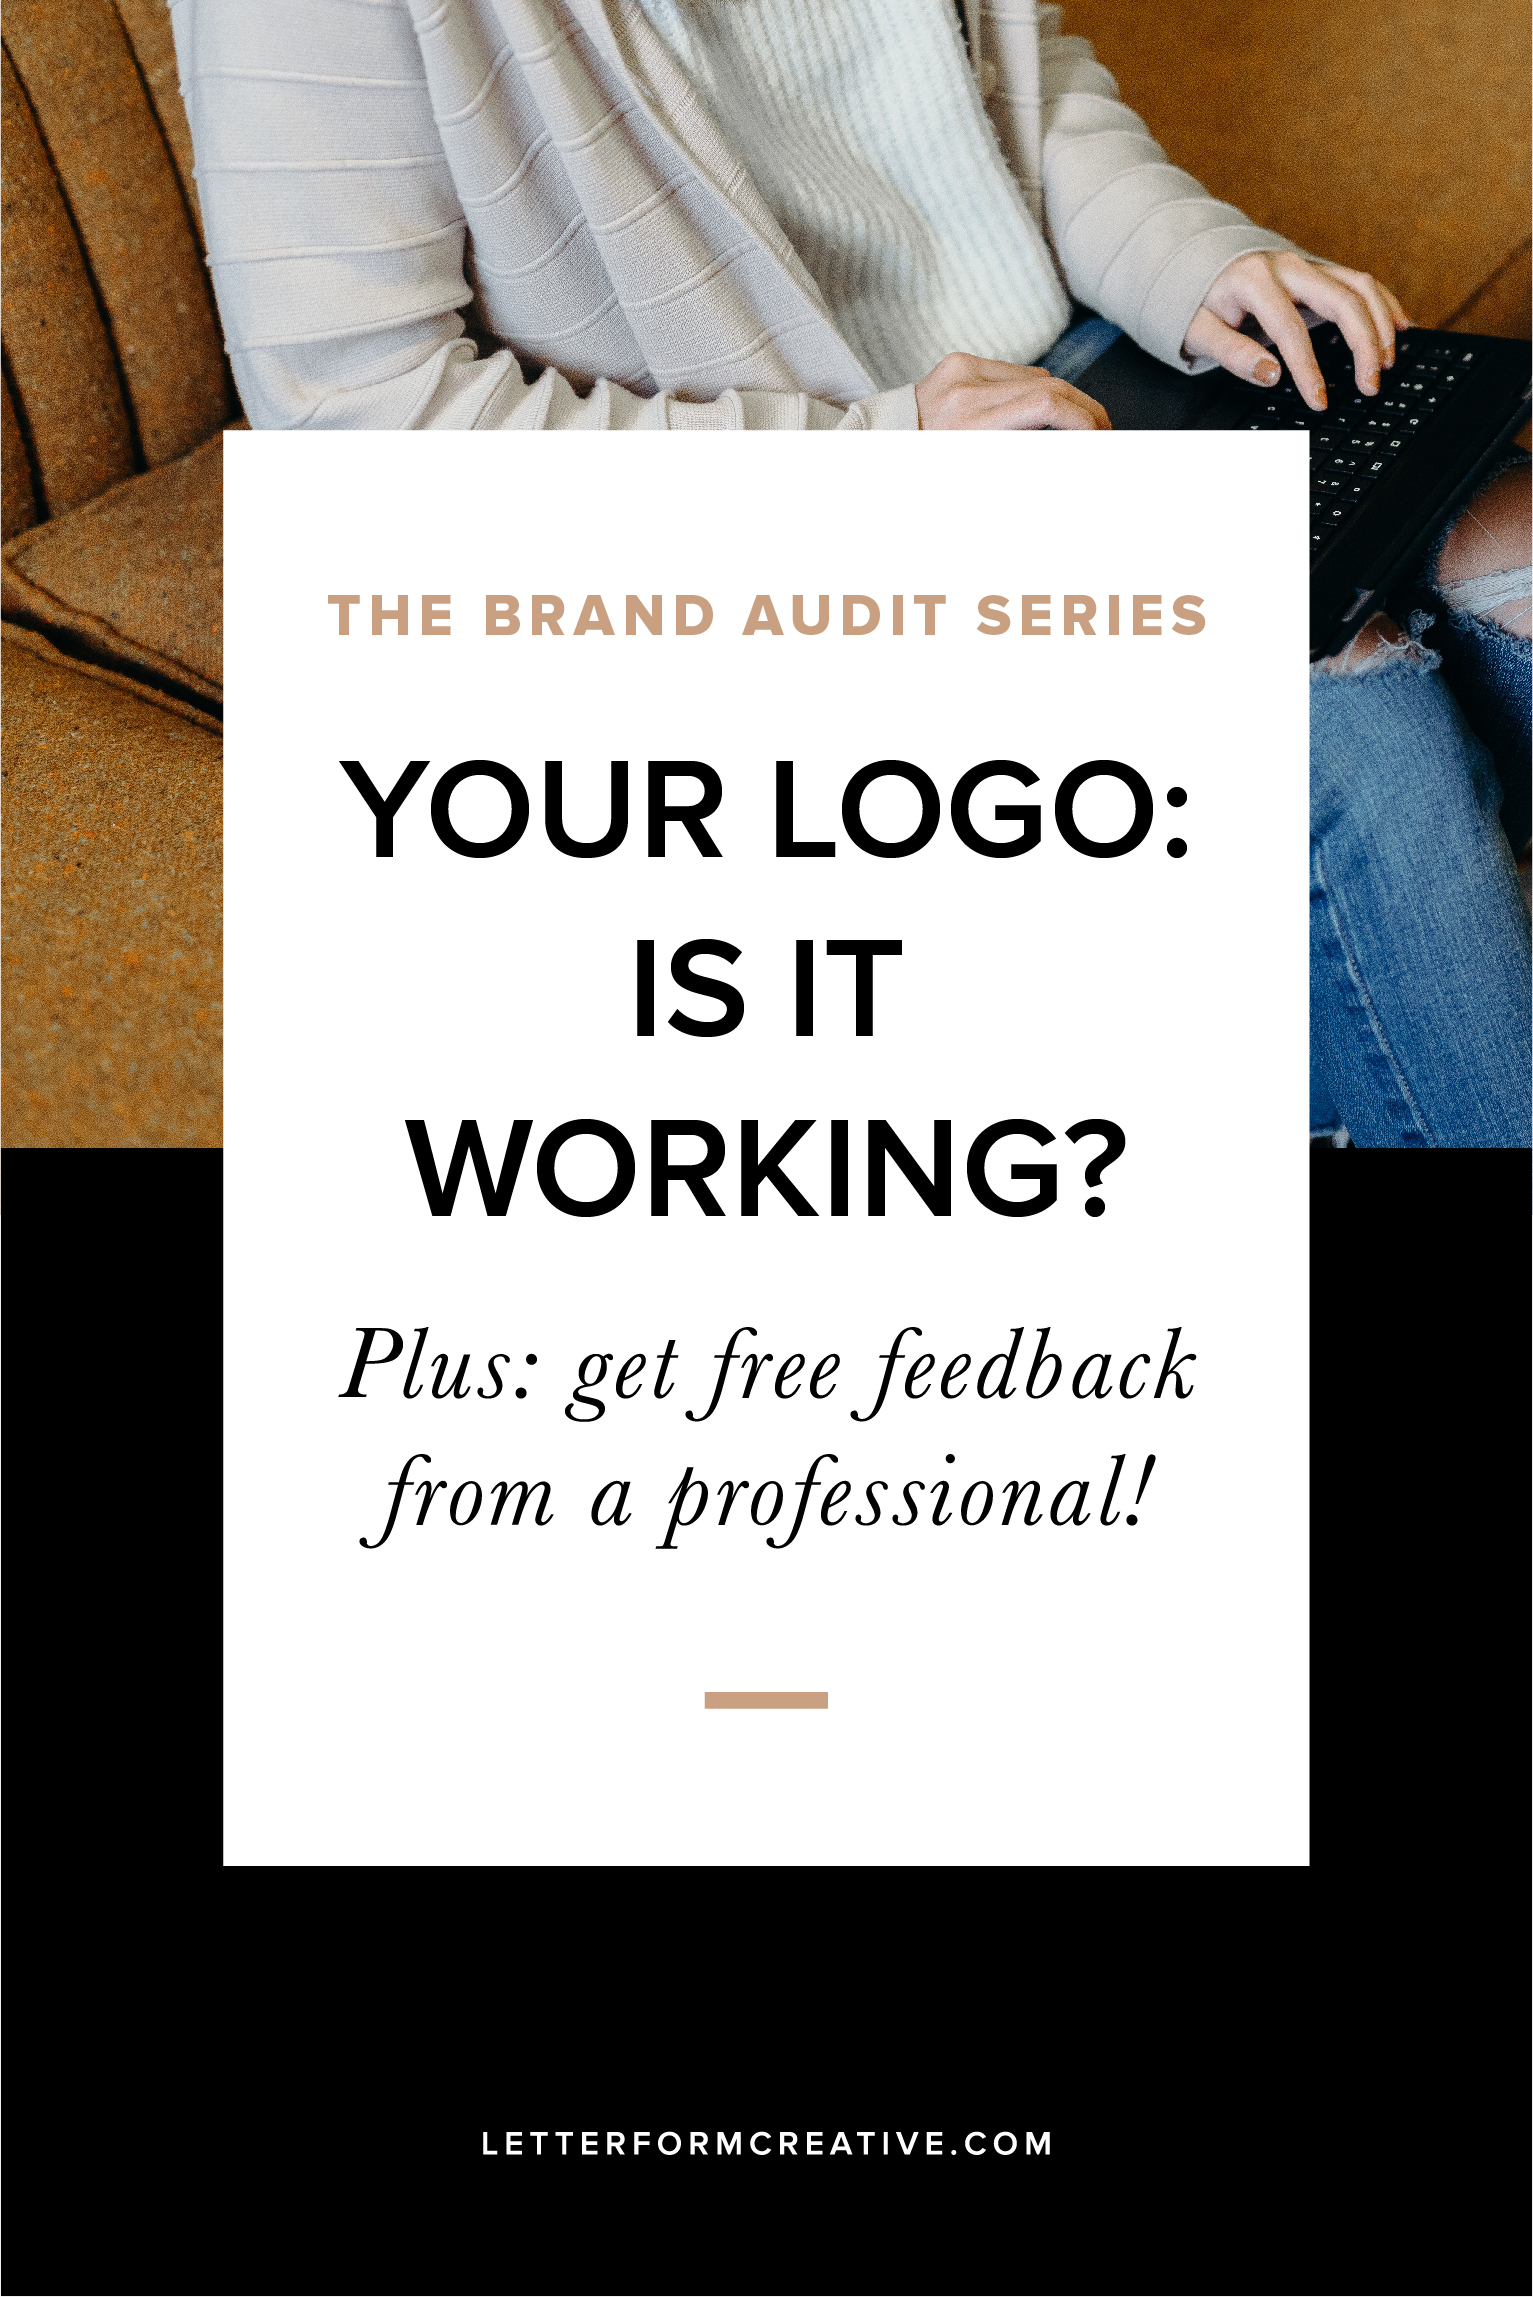 It's such a common pain point for small business owners: Is my logo working? As a professional designer I hear it all the time and know the way it can cripple one's confidence. Find out once and for all if your logo is working for your business and get FREE, professional feedback!